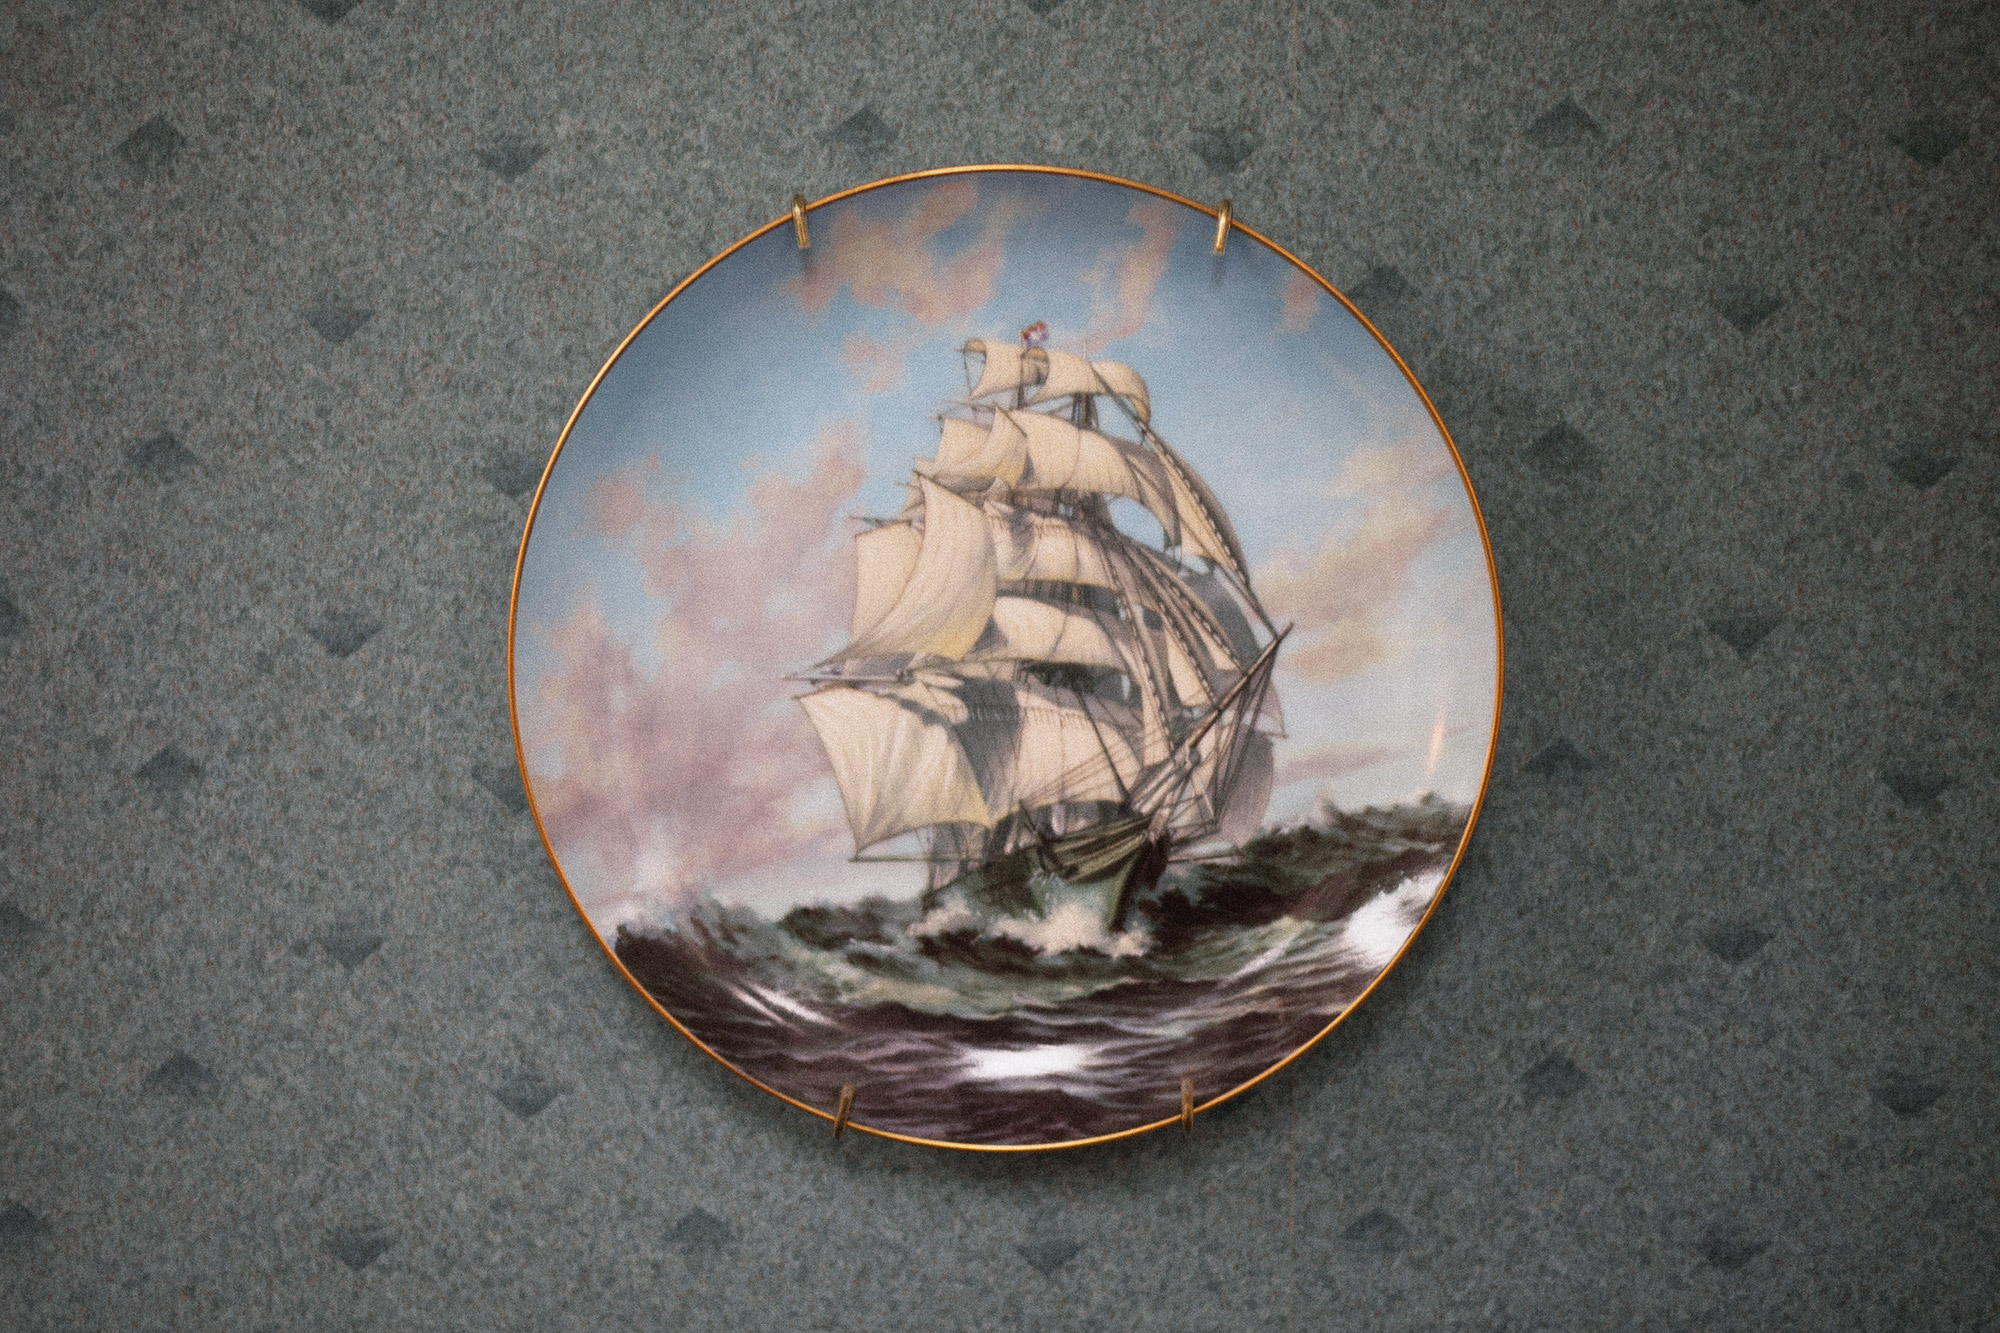 A plate with a ship on it